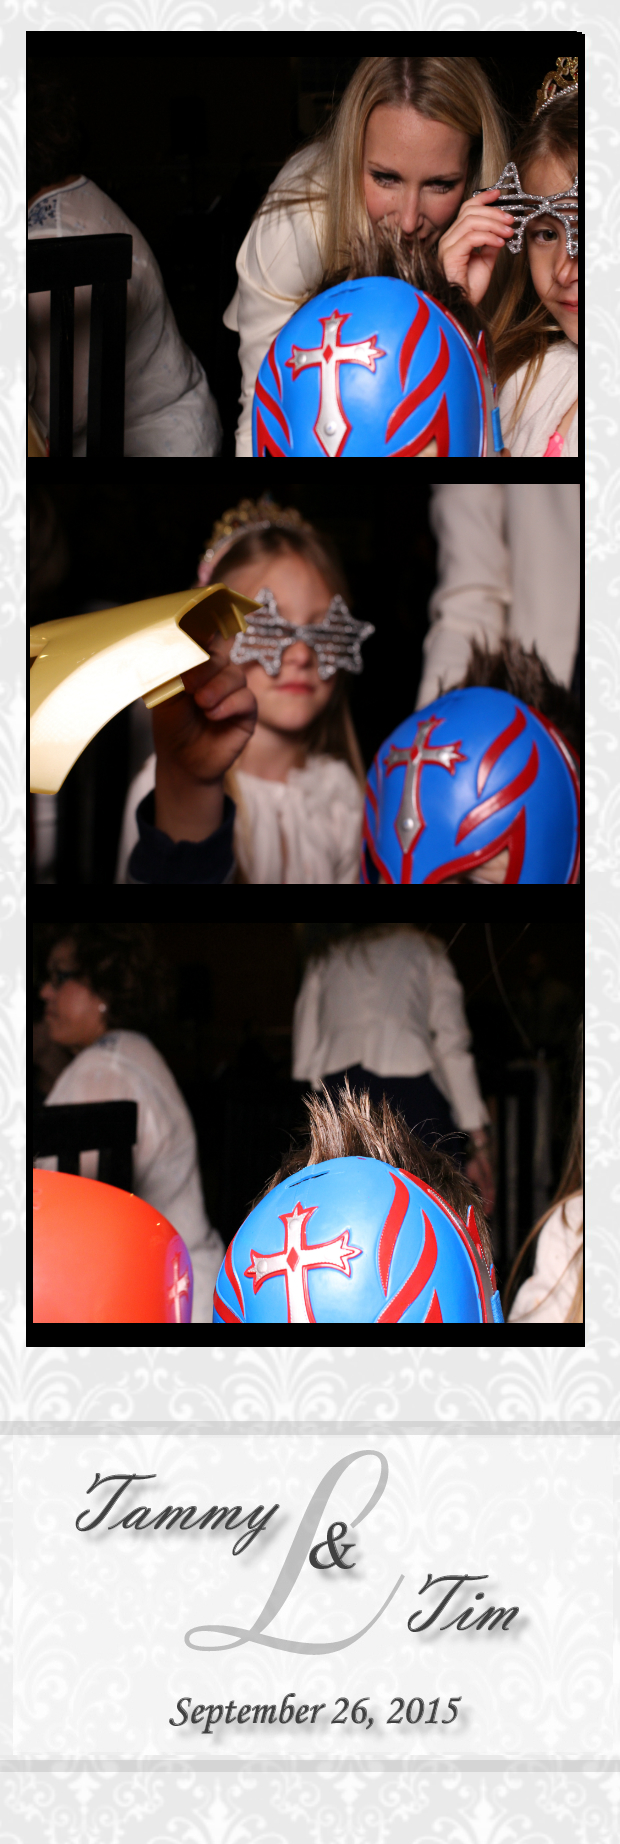 Guest House Events Photo Booth Strips T&T (10).jpg